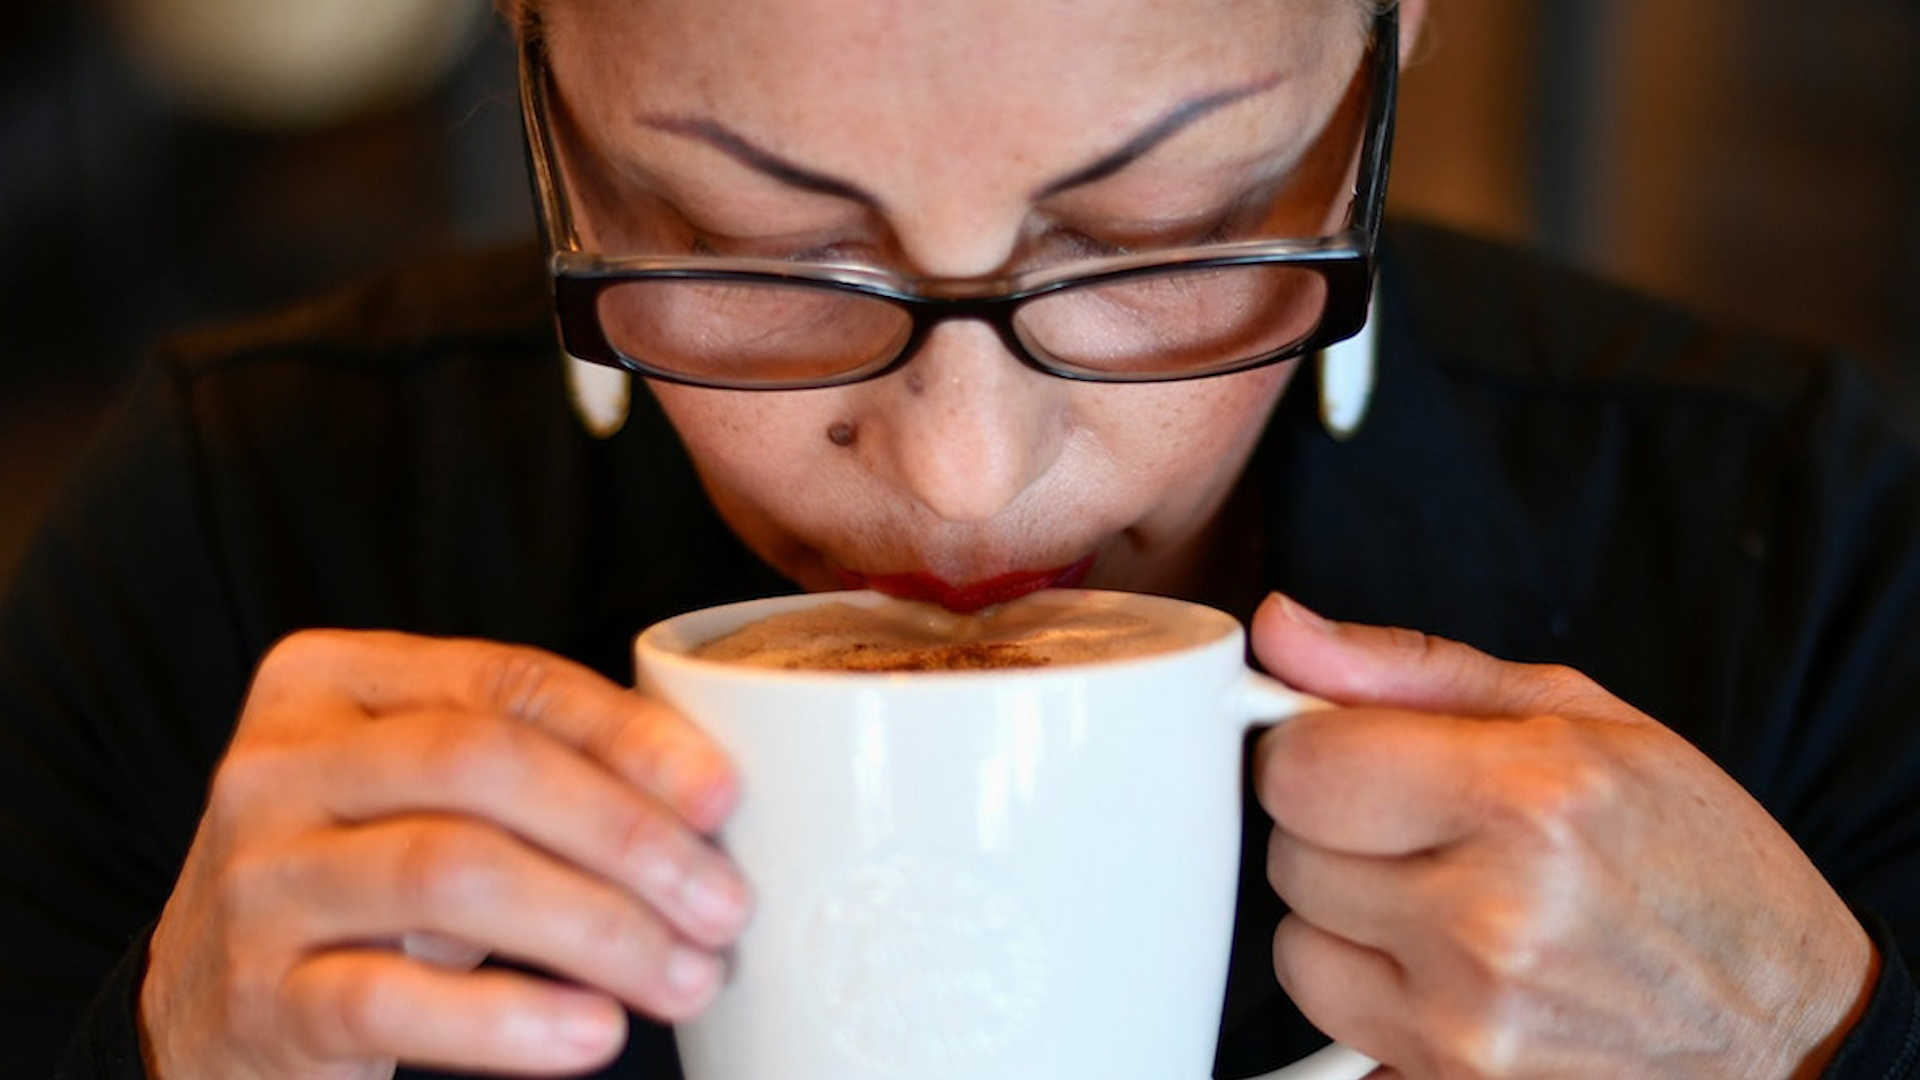 Drinking coffee every day can help reduce the risk of dying from heart disease and stroke - Photo 2